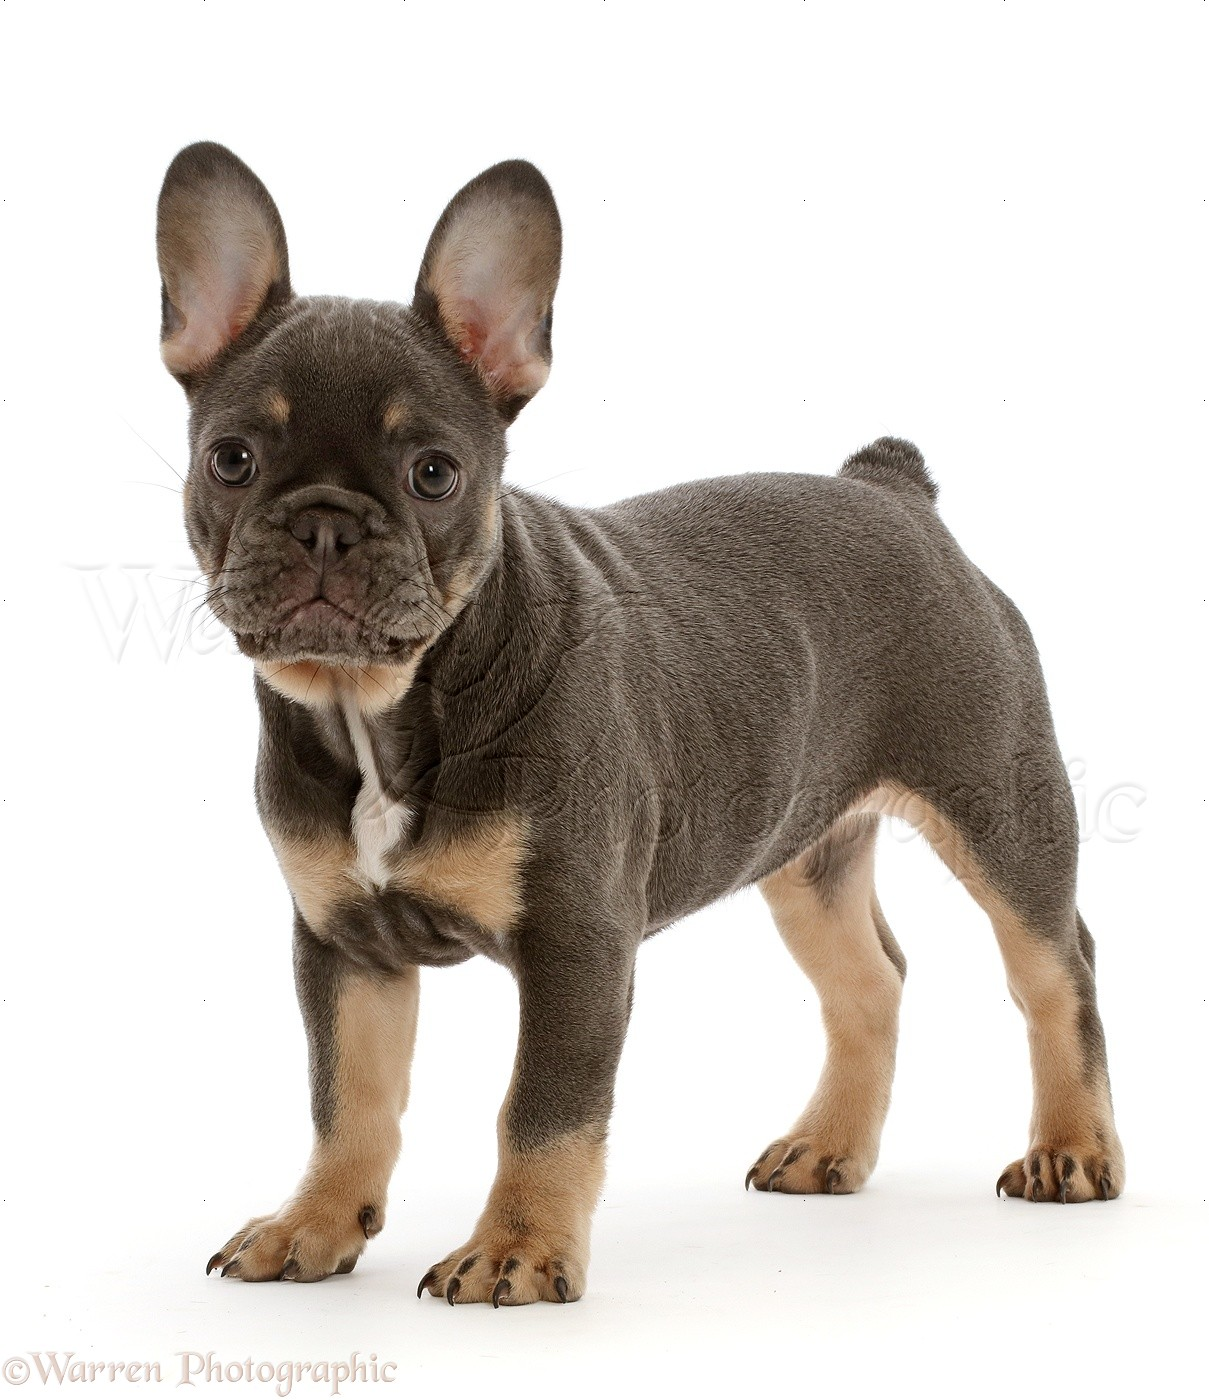 Blue And Tan French Bulldog Puppy Standing Photo Wp46829